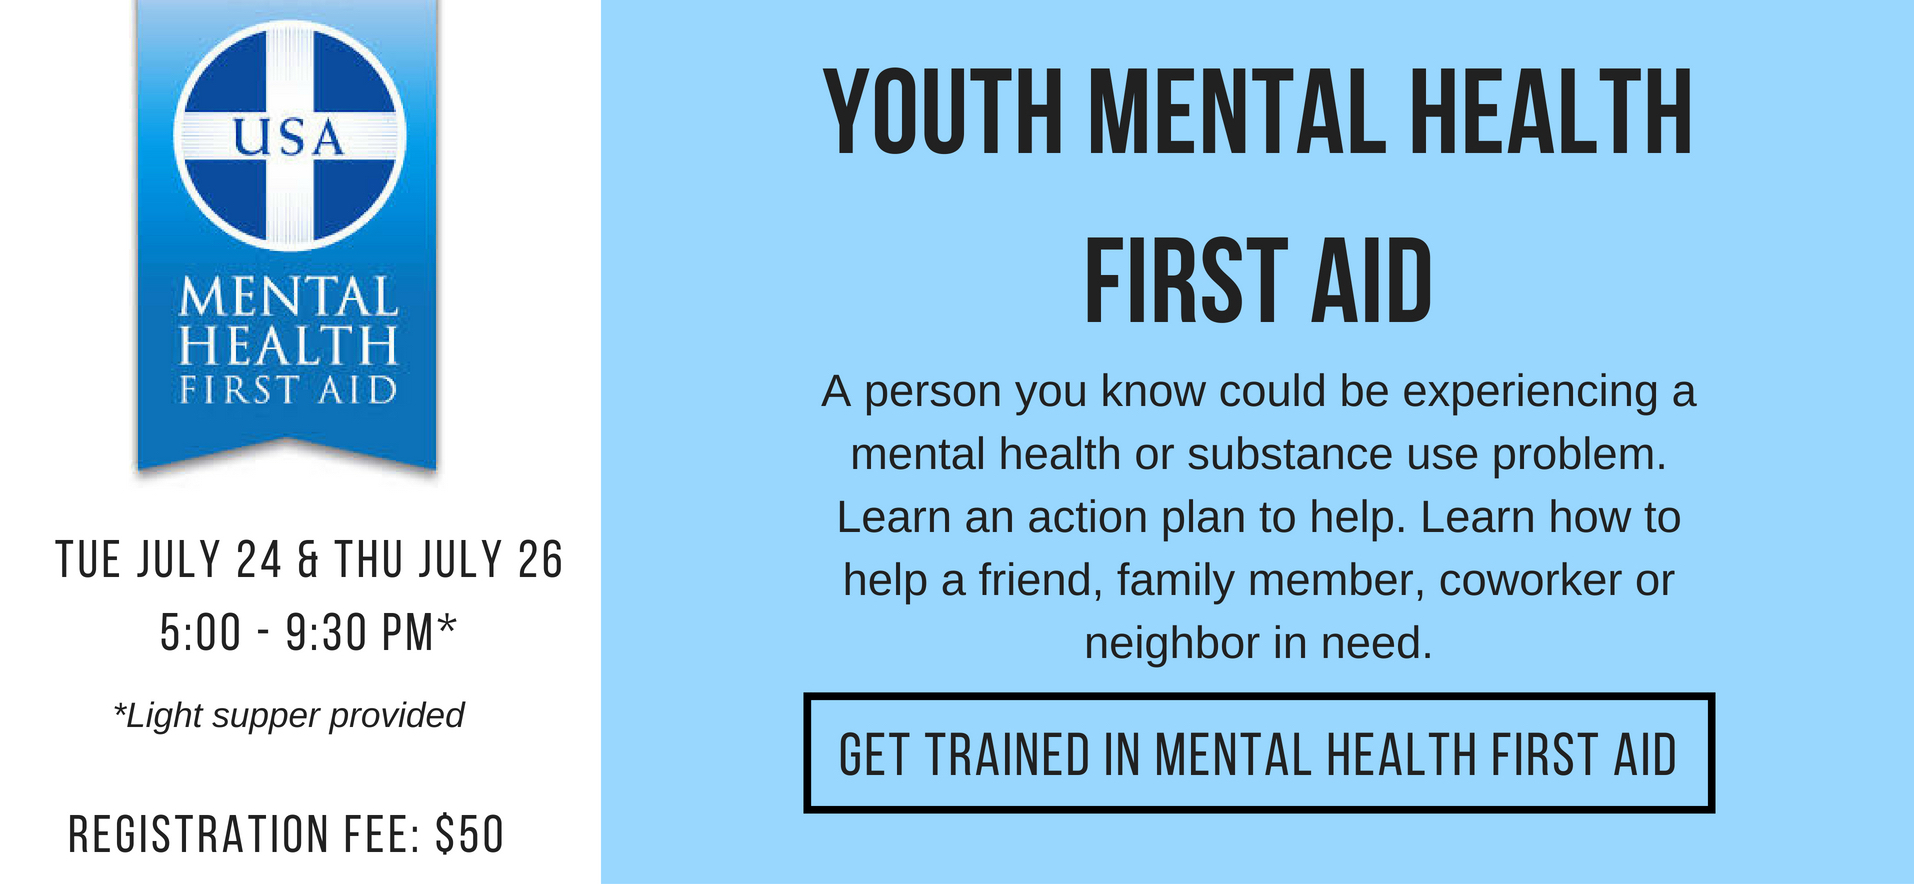 Youth Mental Health First Aid-WebPage Short.jpg